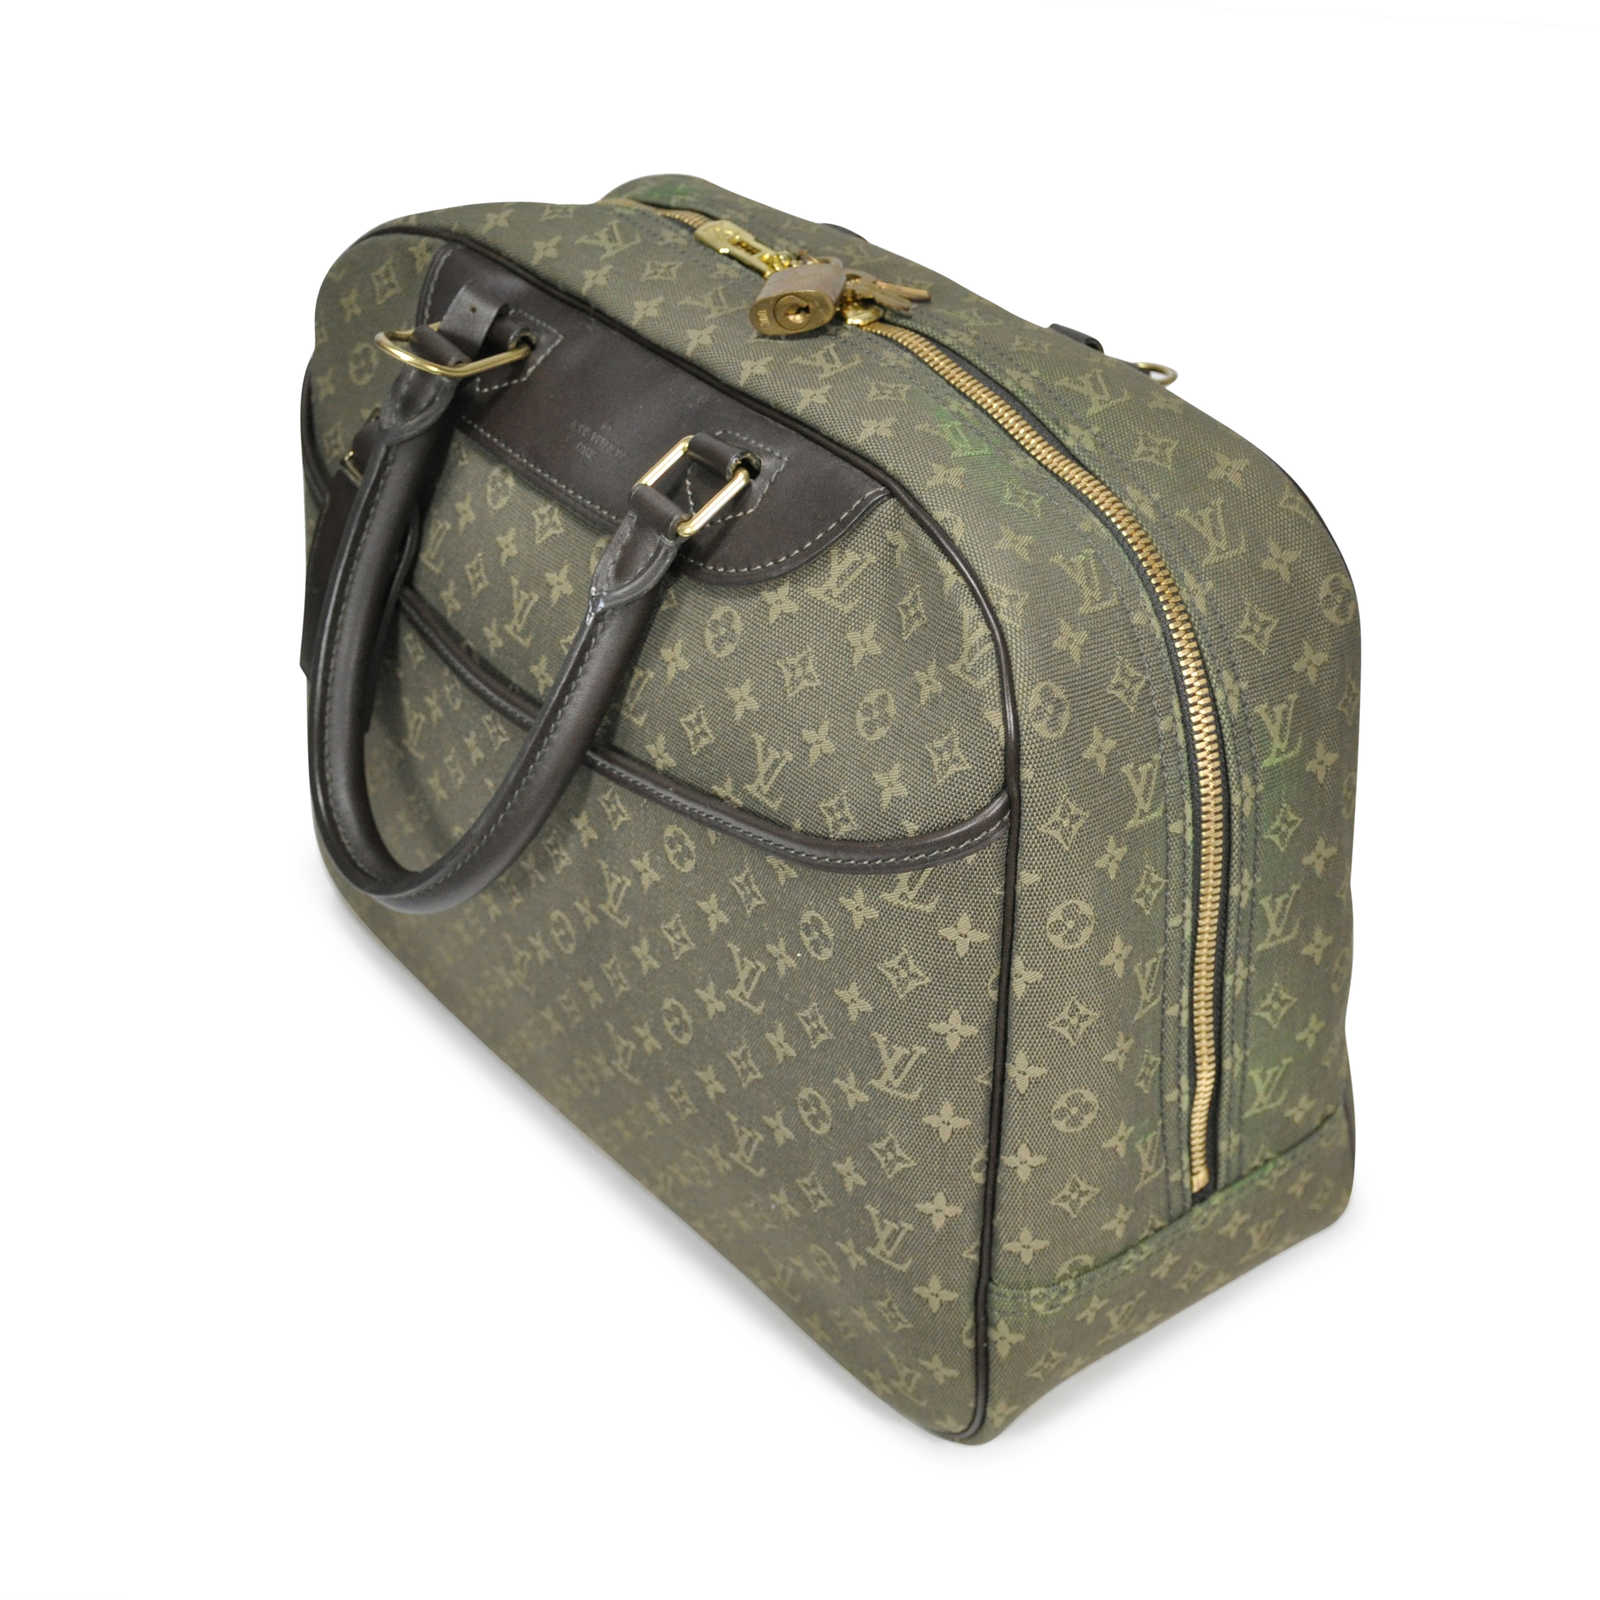 ... Authentic Second Hand Louis Vuitton Deauville Monogram Bowling Vanity  (PSS-200-00009) ... f399ee1ee5ae7